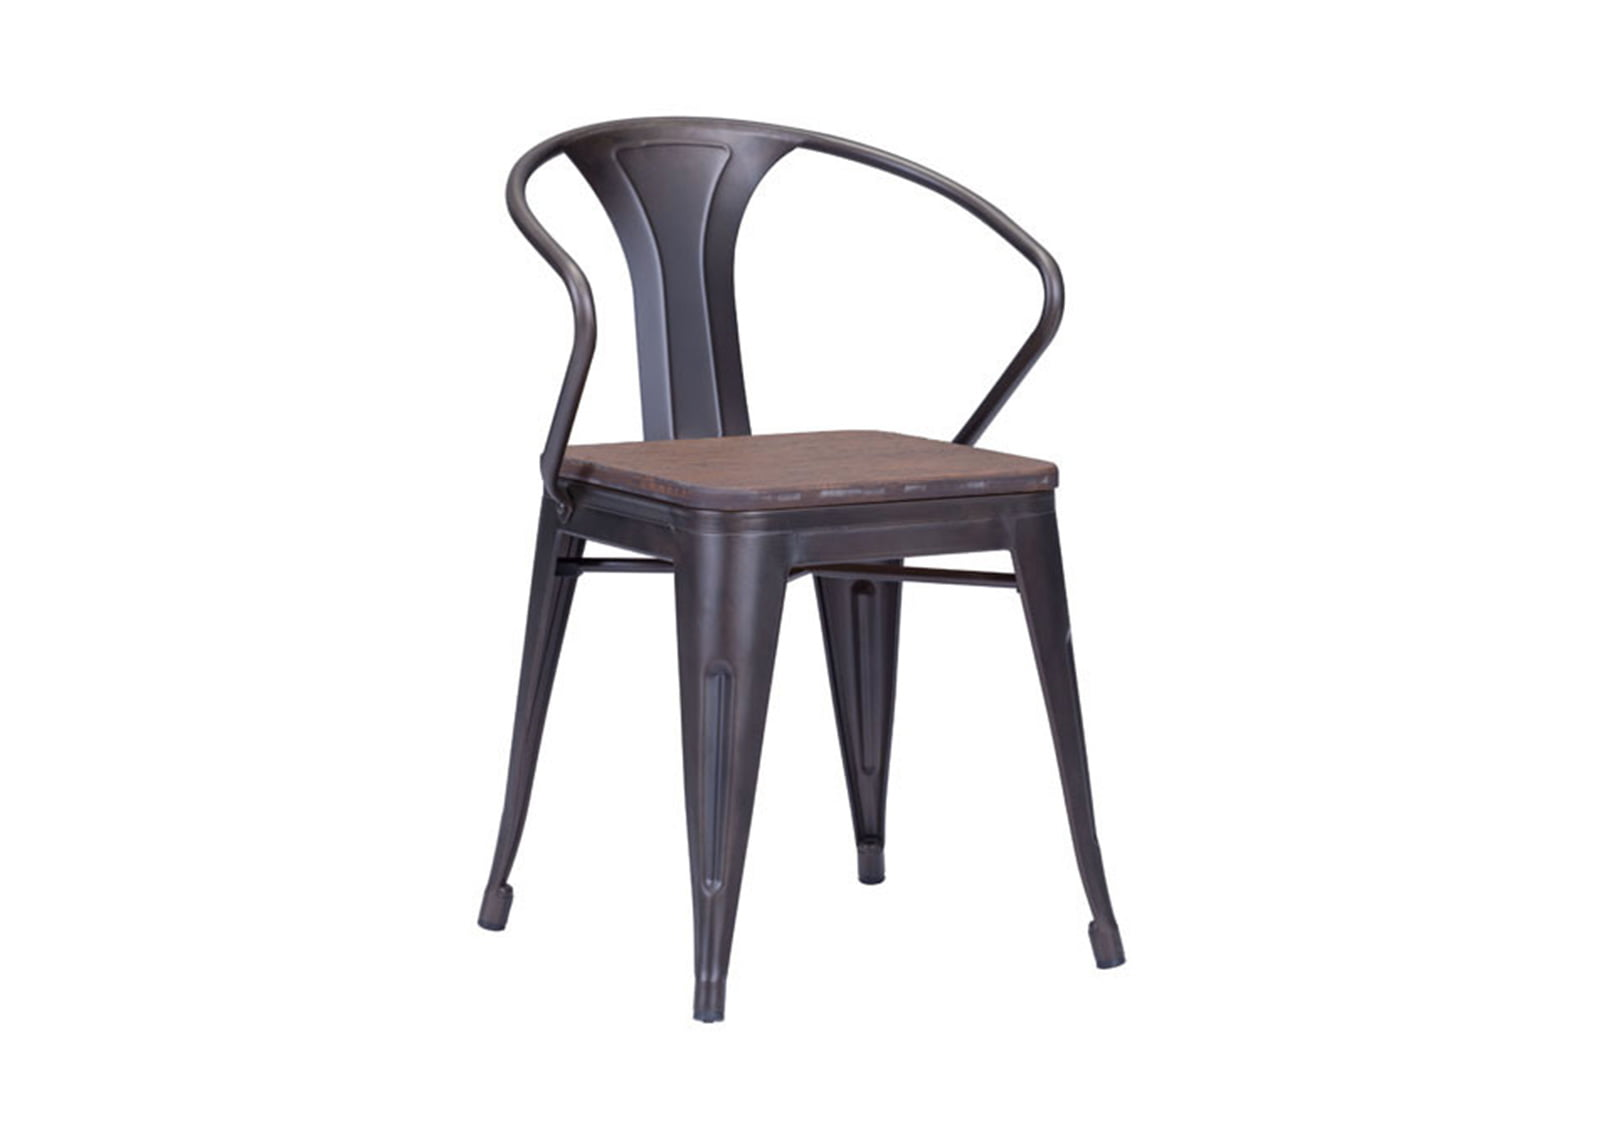 Rustic Dining Chairs Helix Dining Chair Rustic Wood Furnishplus